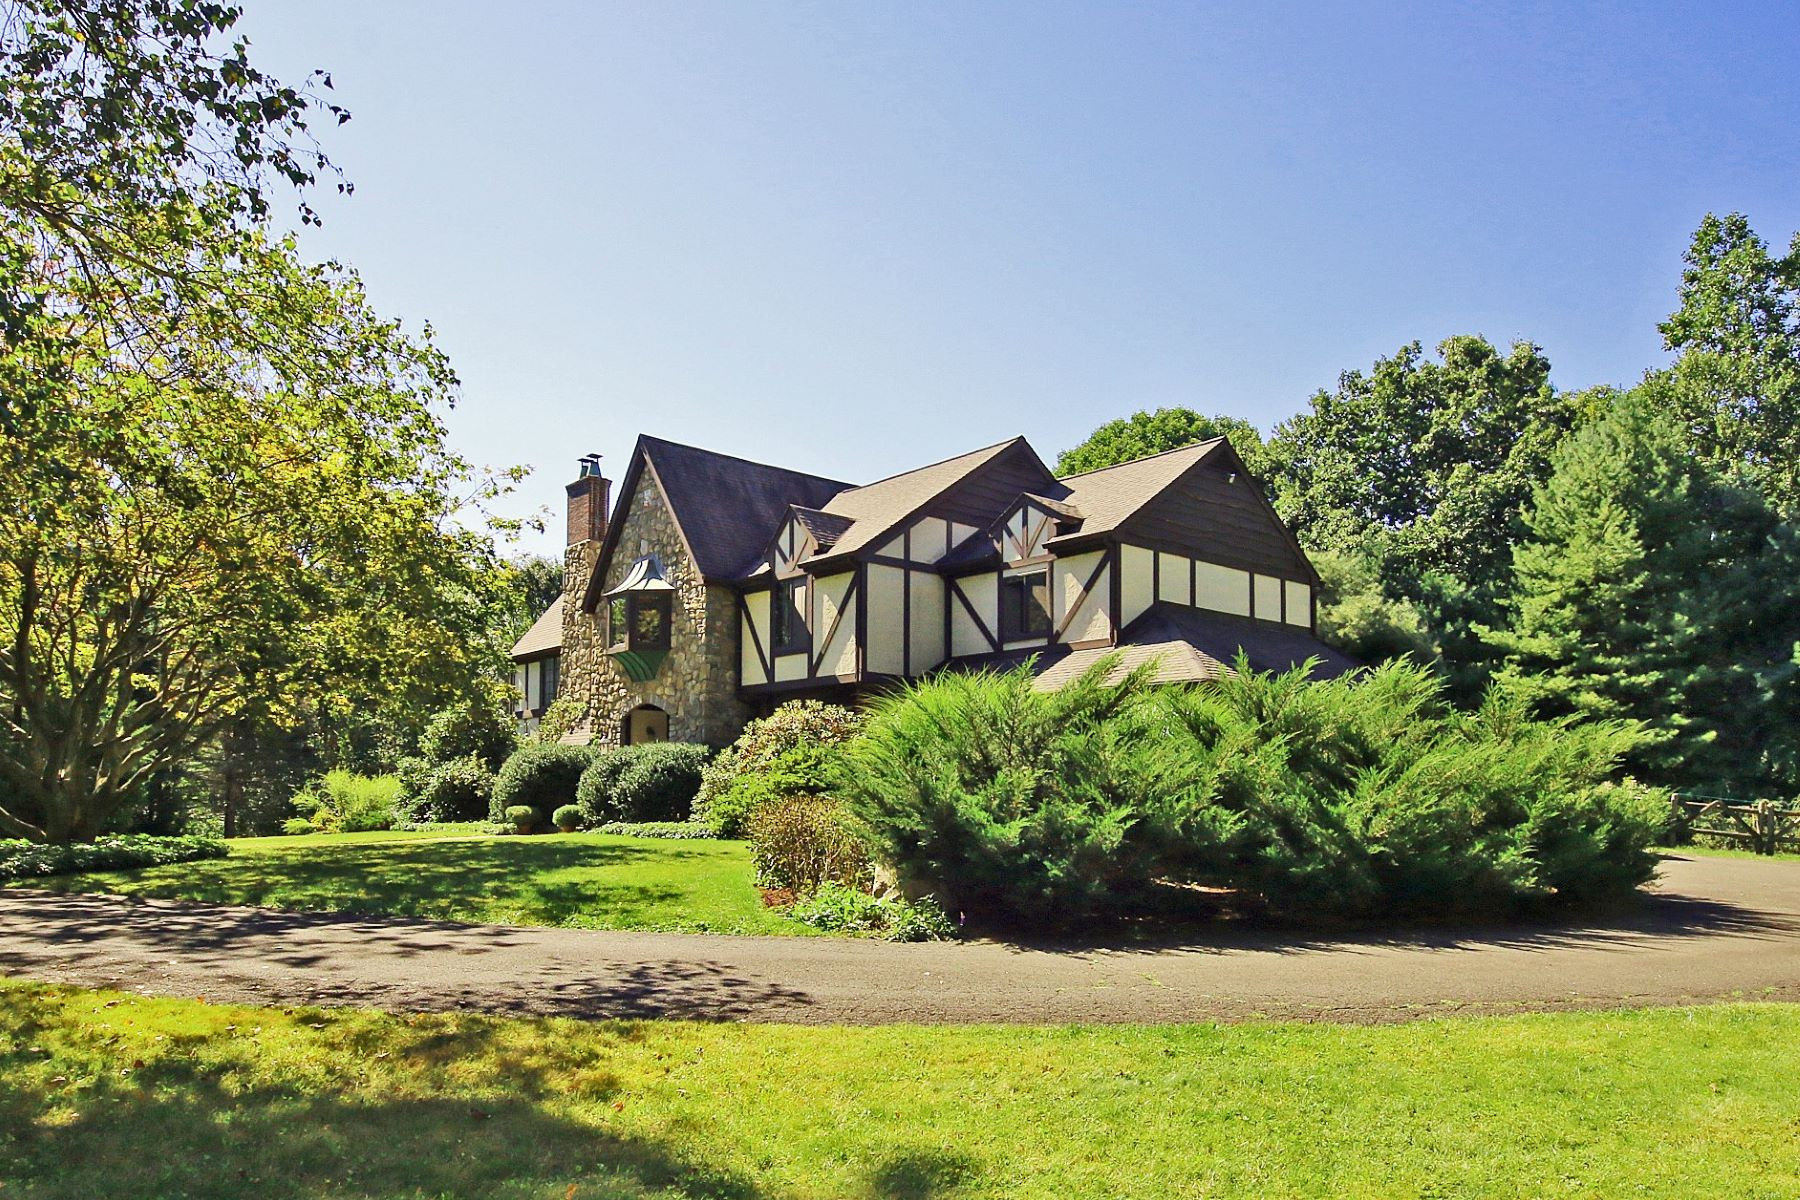 Single Family Home for Sale at Stately English Stone Tudor 15 Tunxis Trail Redding, Connecticut 06896 United States